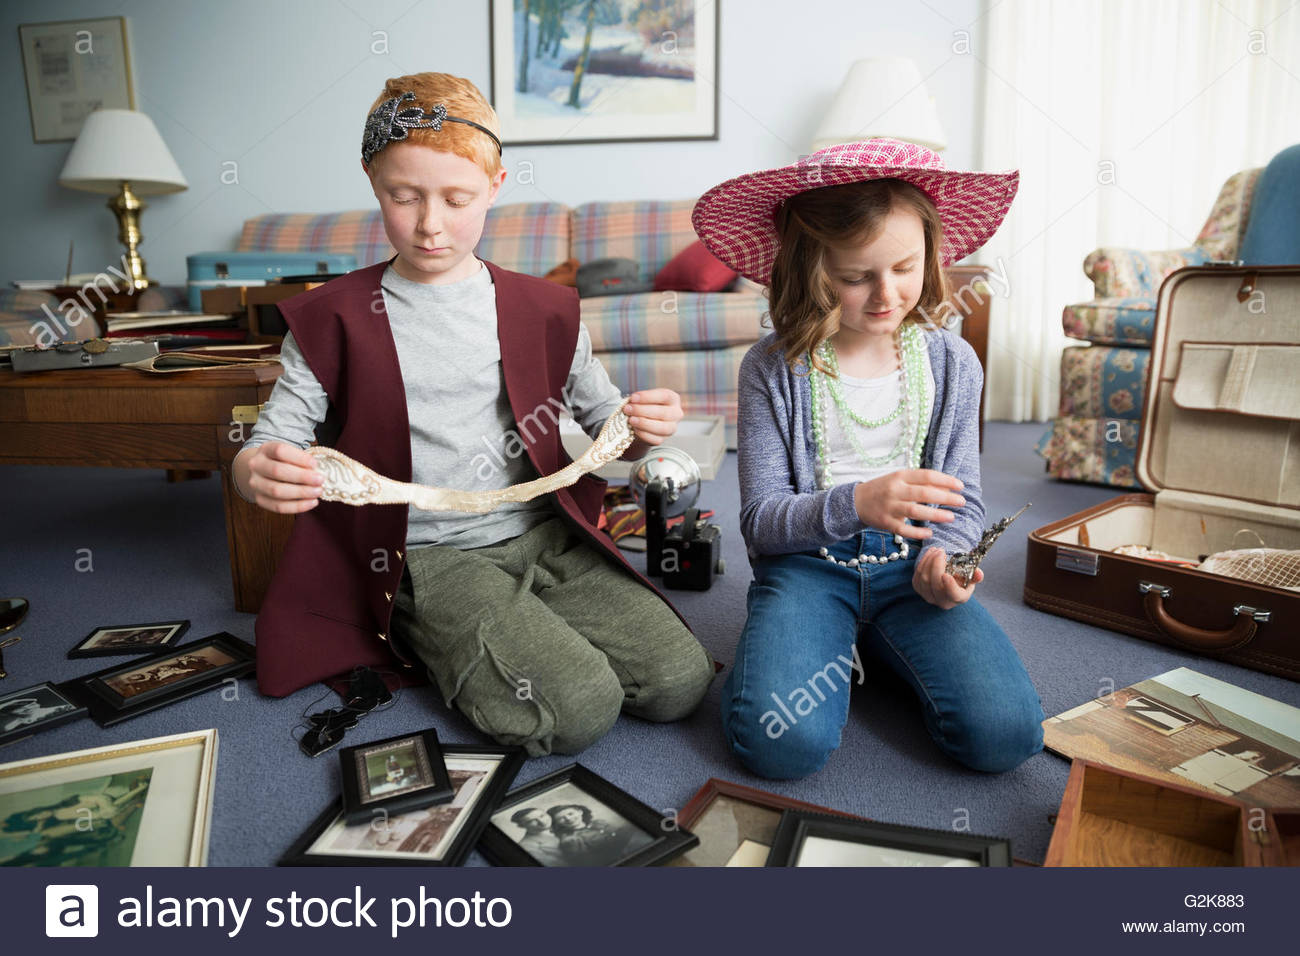 Brother and sister going through old memorabilia - Stock Image